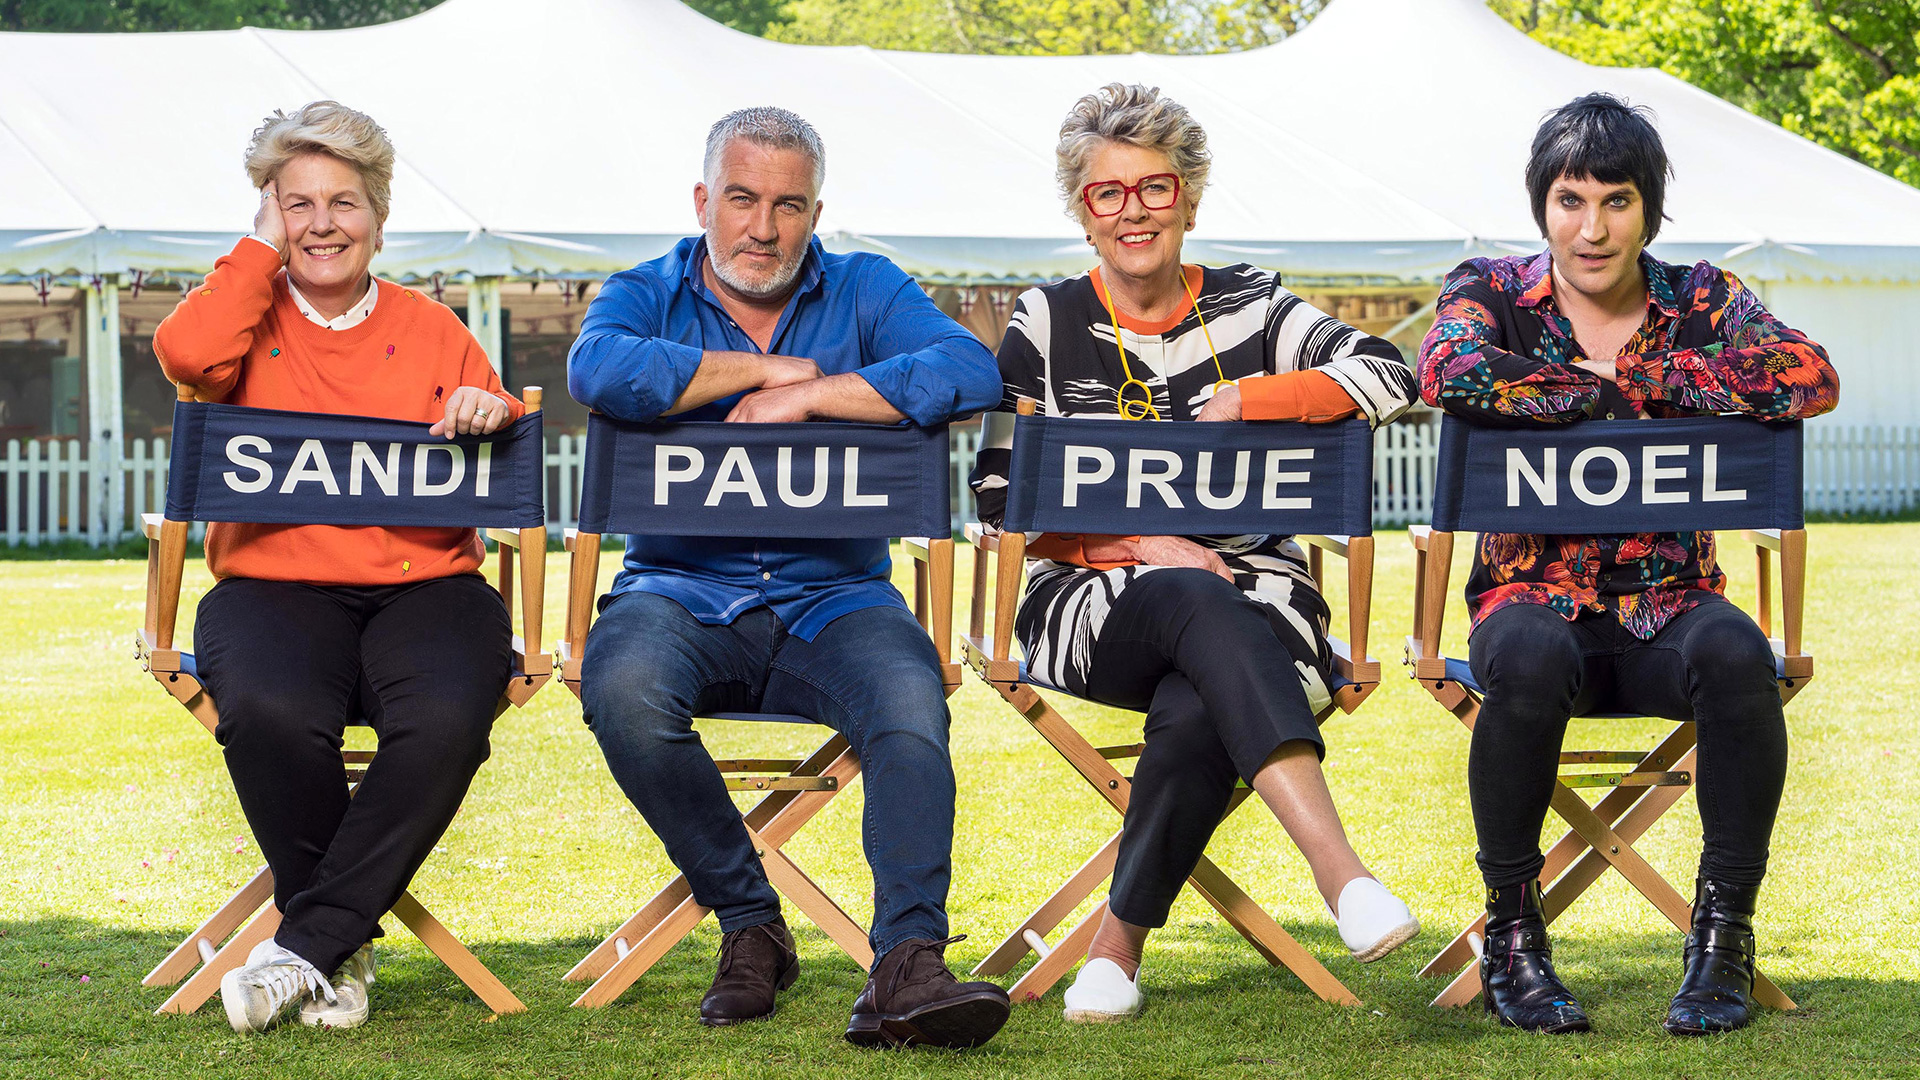 'Great British Bake Off' Leftovers Get Fed to Prue's Pigs